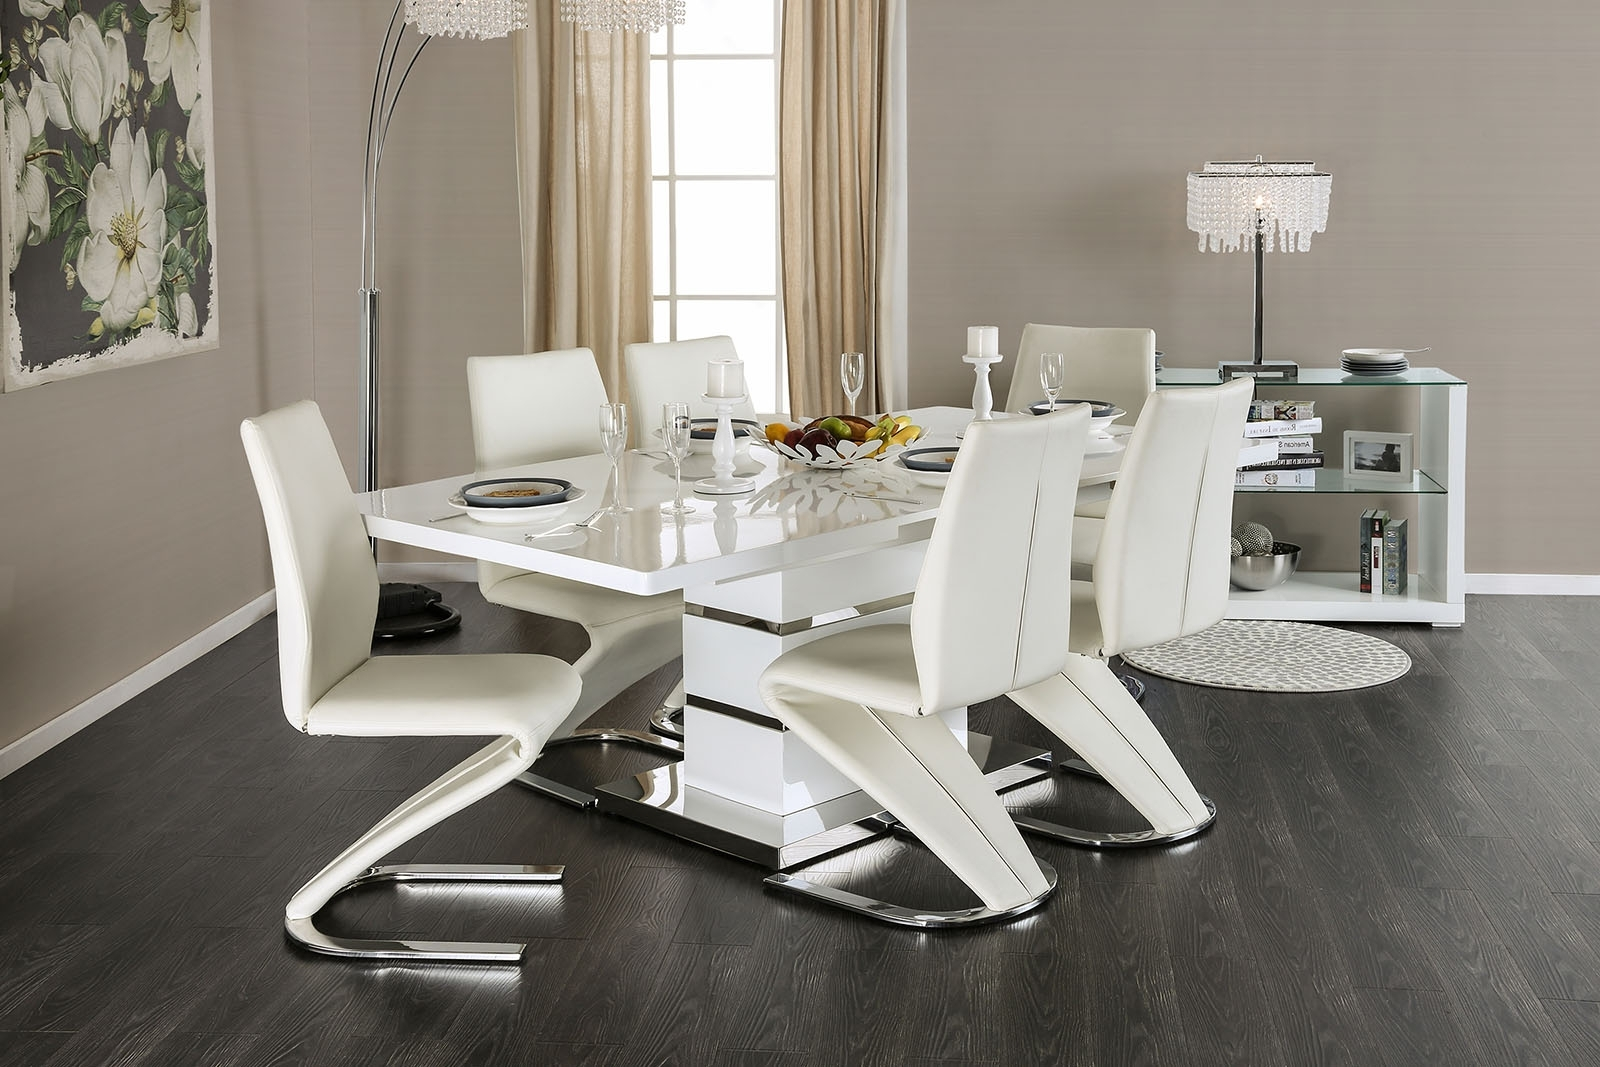 Midvale Contemporary Style White High Gloss Lacquer Finish & Chrome Throughout Most Recent High Gloss Dining Tables Sets (View 10 of 25)